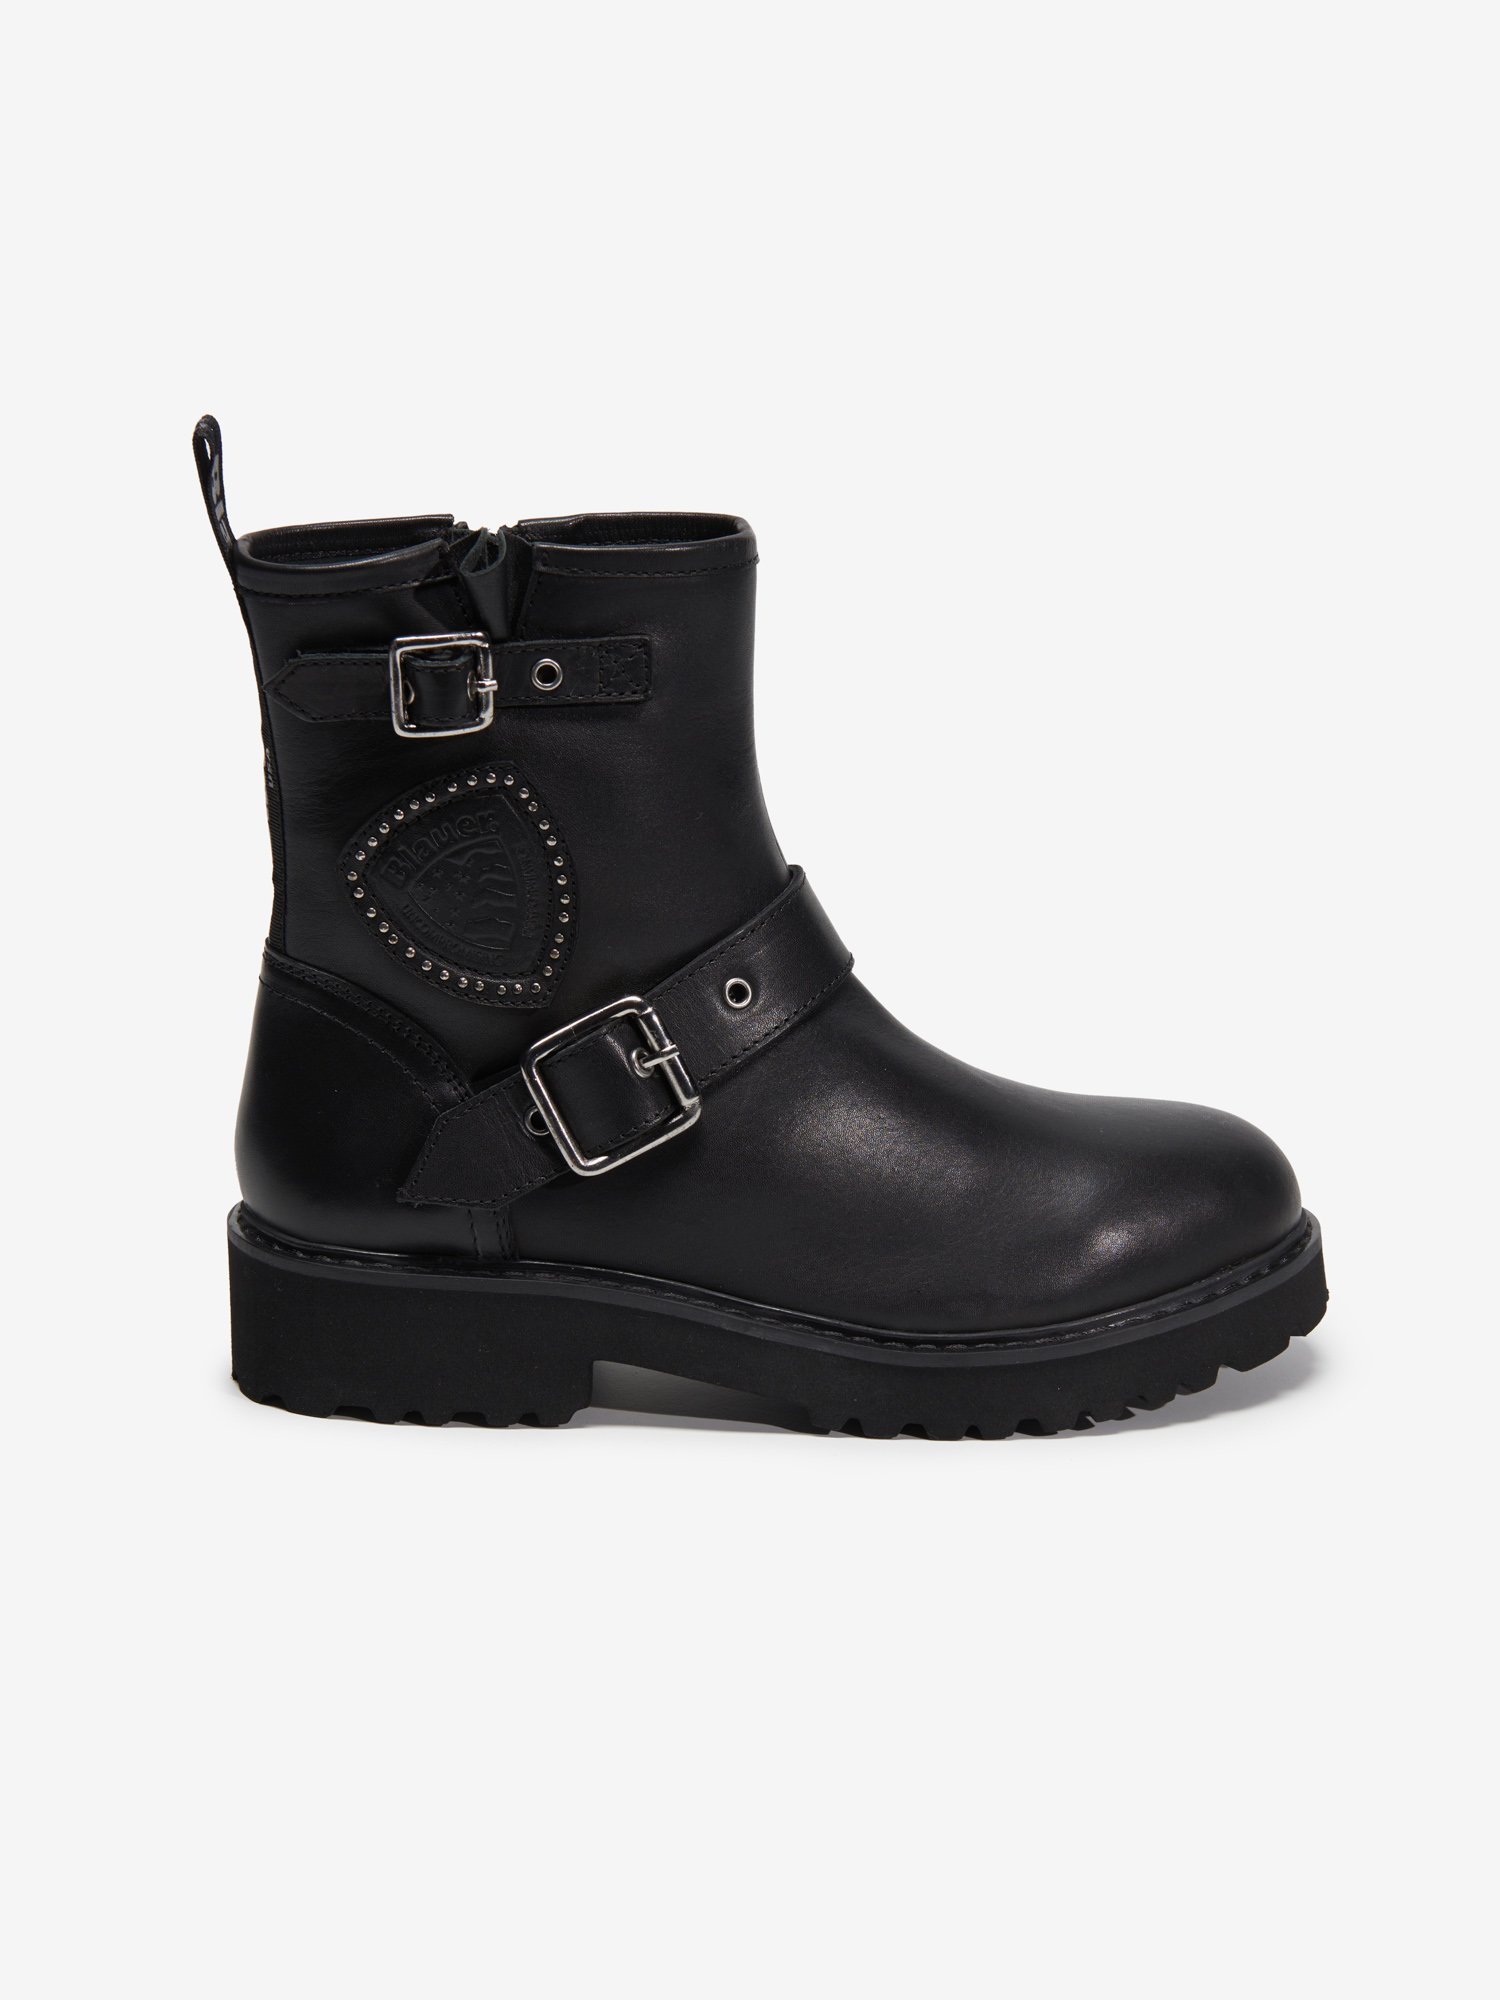 IRVINE LEATHER BOOTS WITH BUCKLE CLOSURE - Blauer